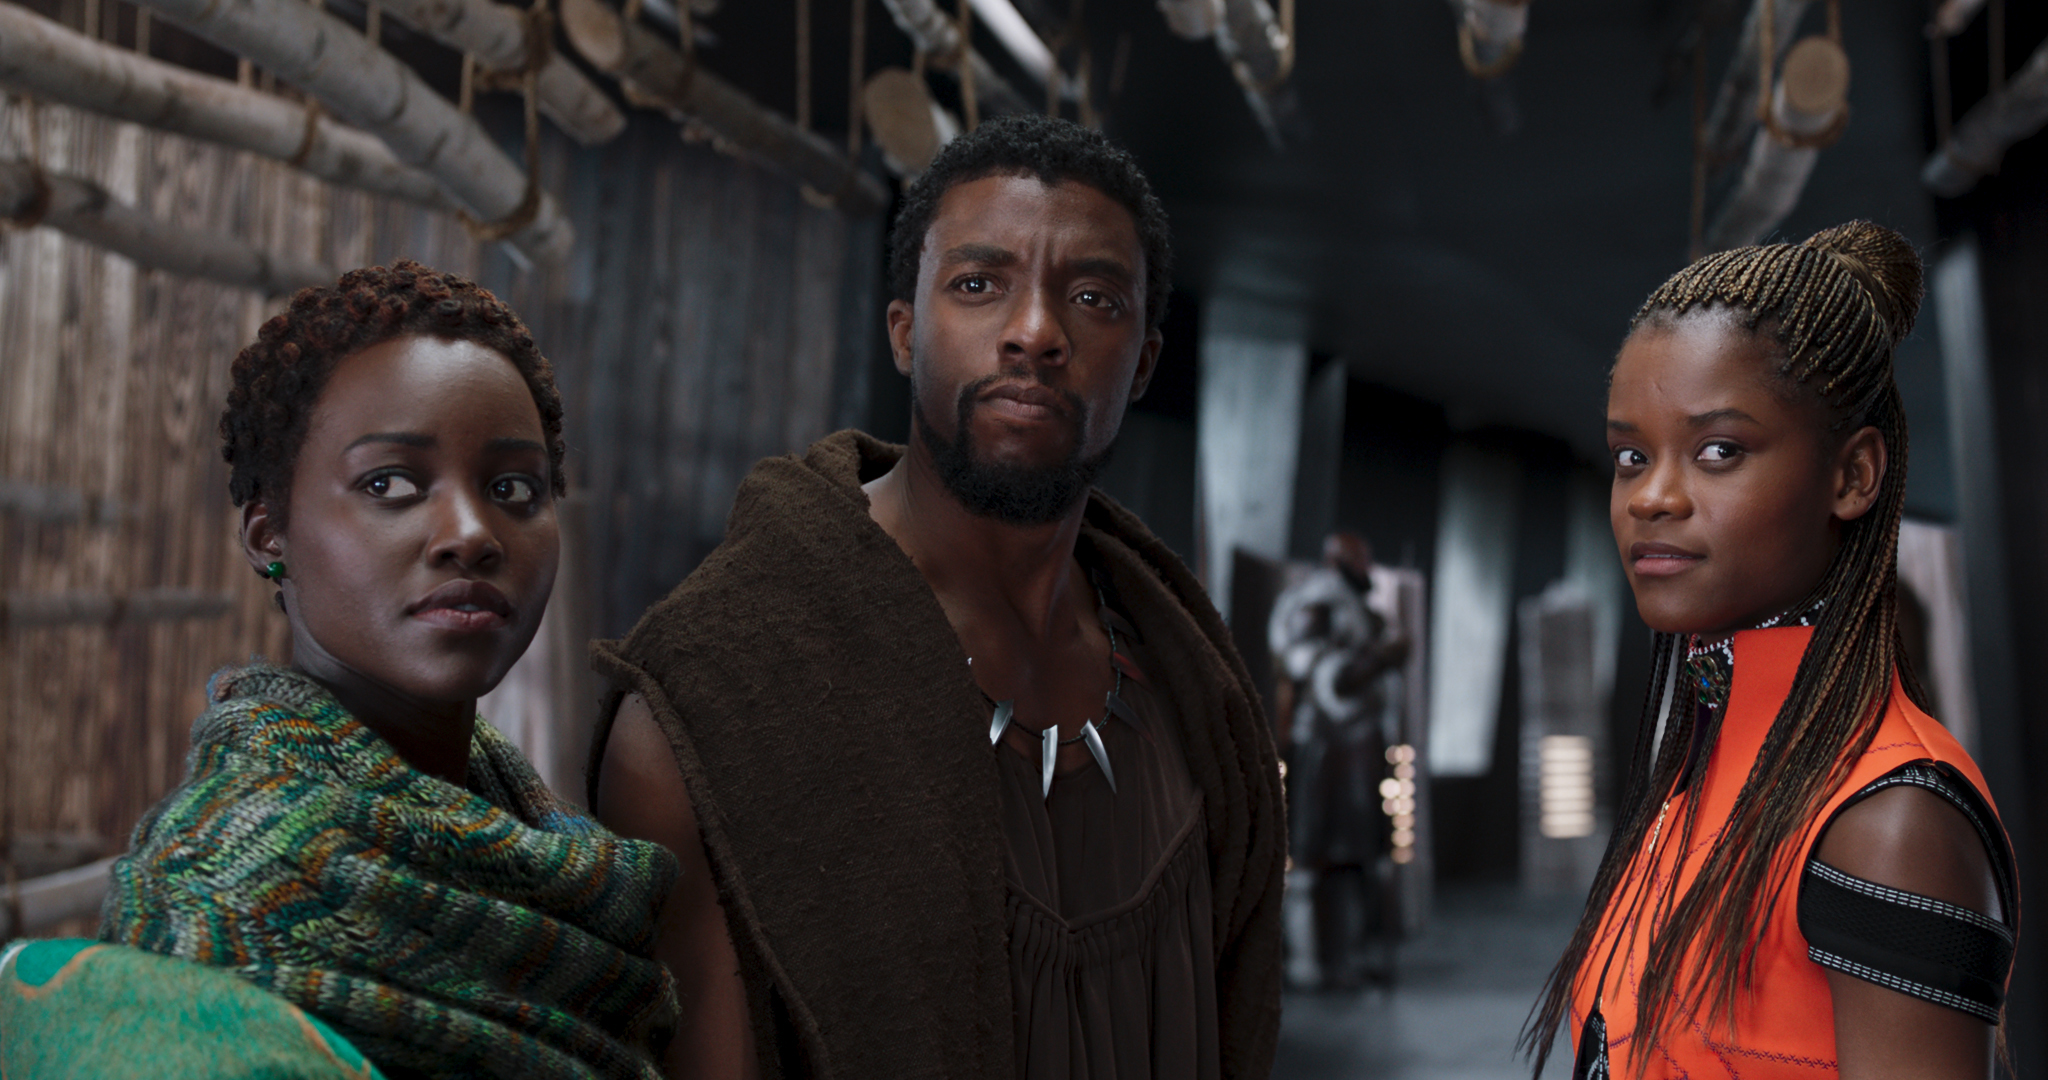 Black Panther to Pass Avengers, Become Marvel's Top Domestic Release